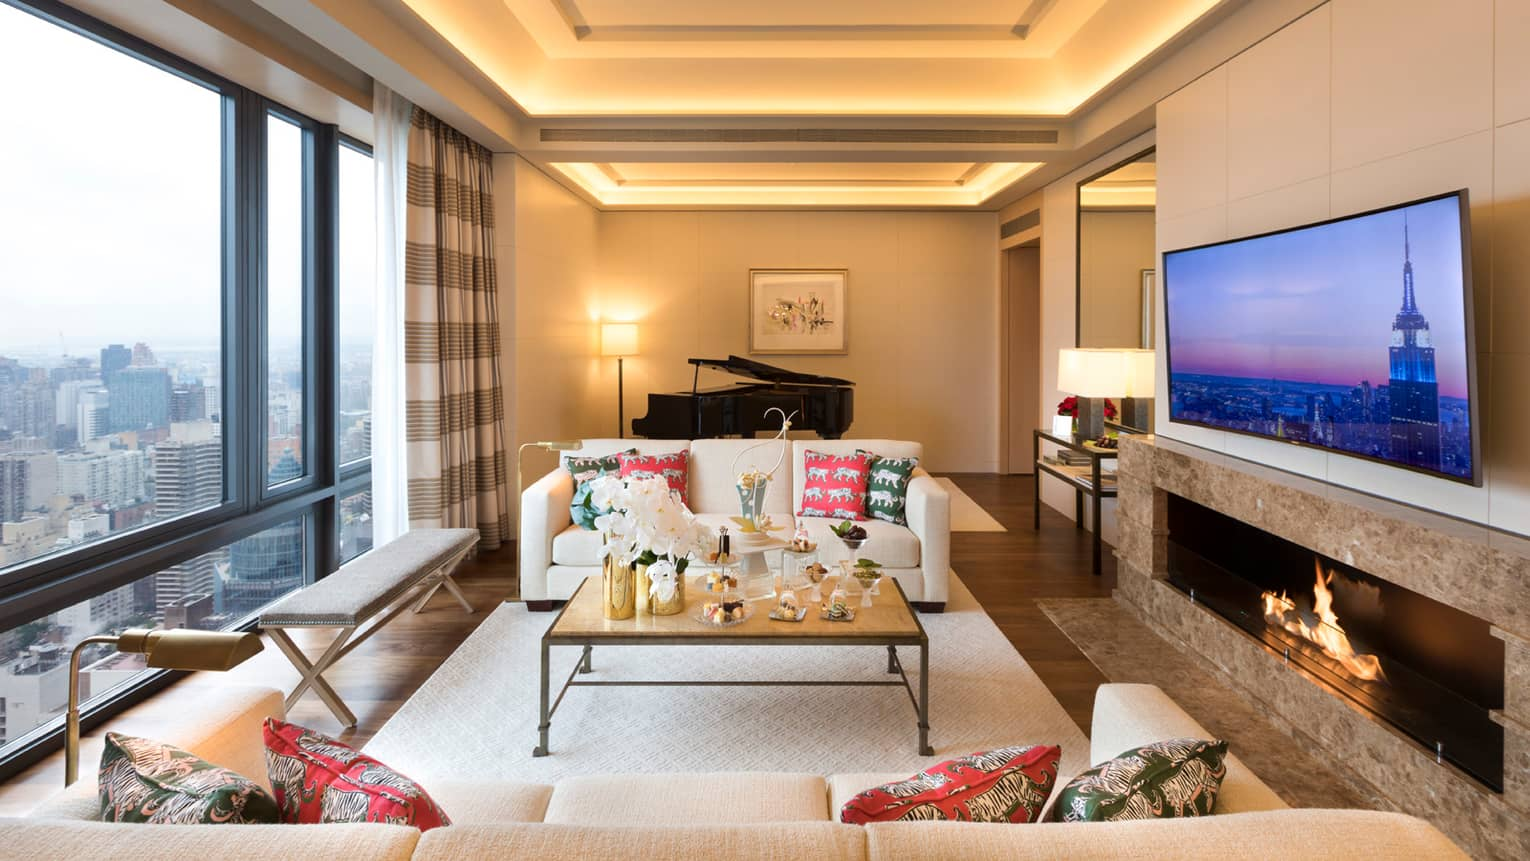 Gotham Suite sofas, tables with trays of sweets between floor-to-ceiling window, large TV